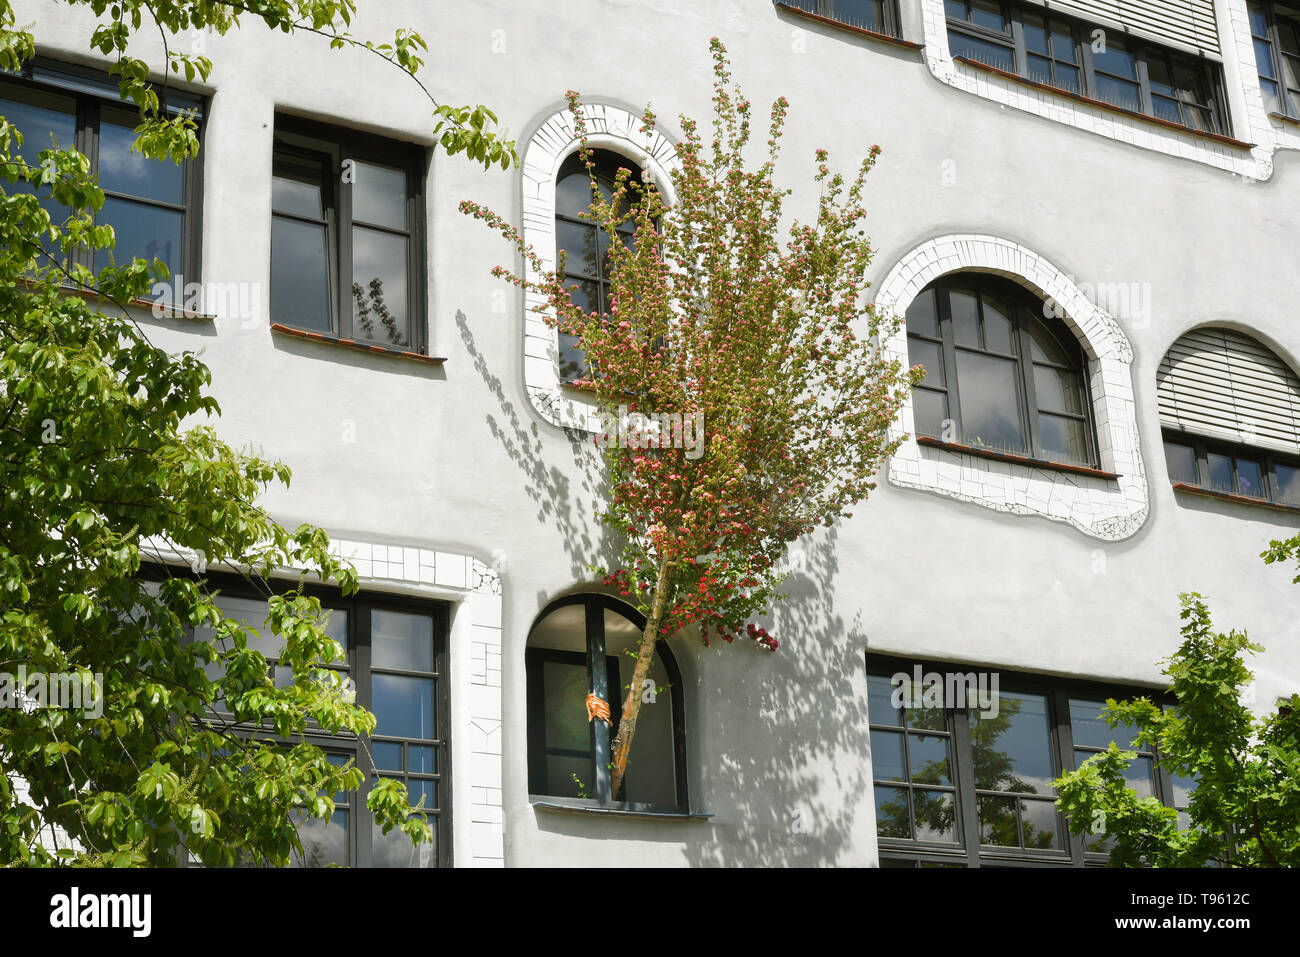 07 May 2019, Saxony-Anhalt, Wittenberg Lutherstadt: The photo shows a part of the Luther-Melanchthon-Gymnasium in Wittenberg, which was rebuilt 20 years ago according to the plans of Friedensreich Hundertwasser (1928-2000). The anniversary in Wittenberg is now being celebrated with a festival week, with exhibitions, theatre performances, concerts and the handover of a green school project. After the fall of the Berlin Wall, students from the city turned directly to the famous Viennese artist and architect with the request to transform the GDR prefabricated building into a very special place. A - Stock Image